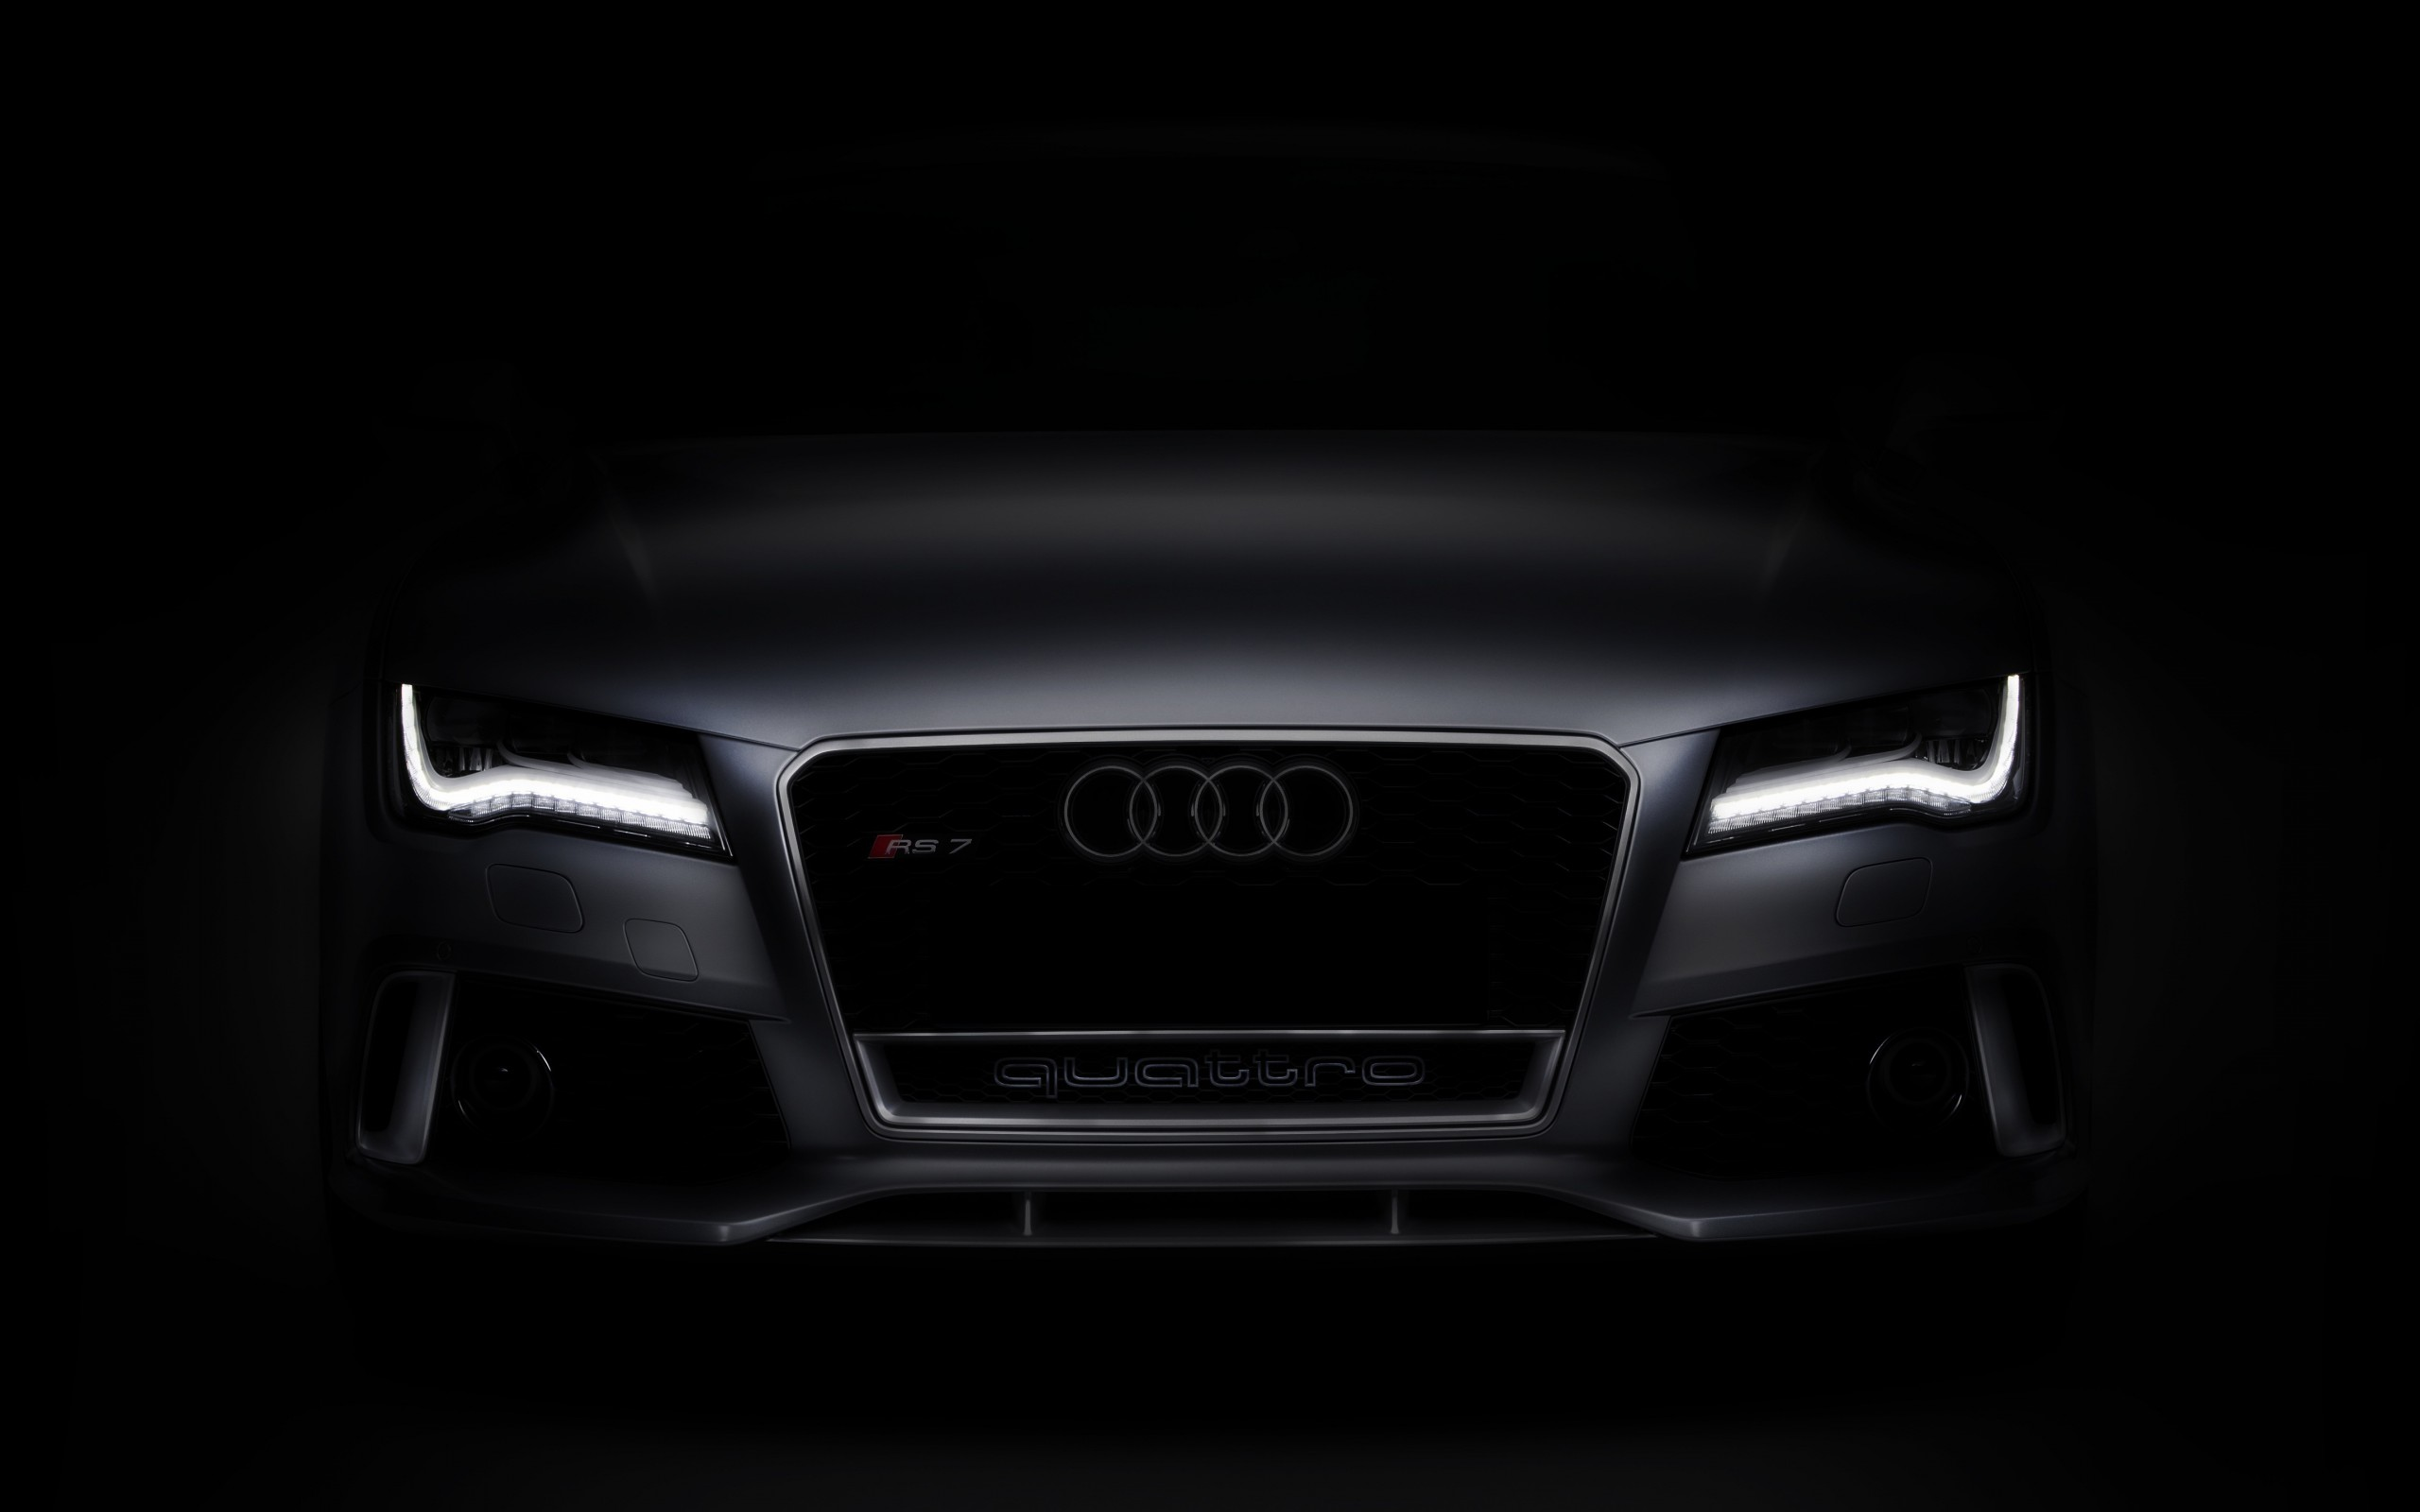 Free Download Audi Rs7 Hd Wallpaper For Desktop And Mobiles 13